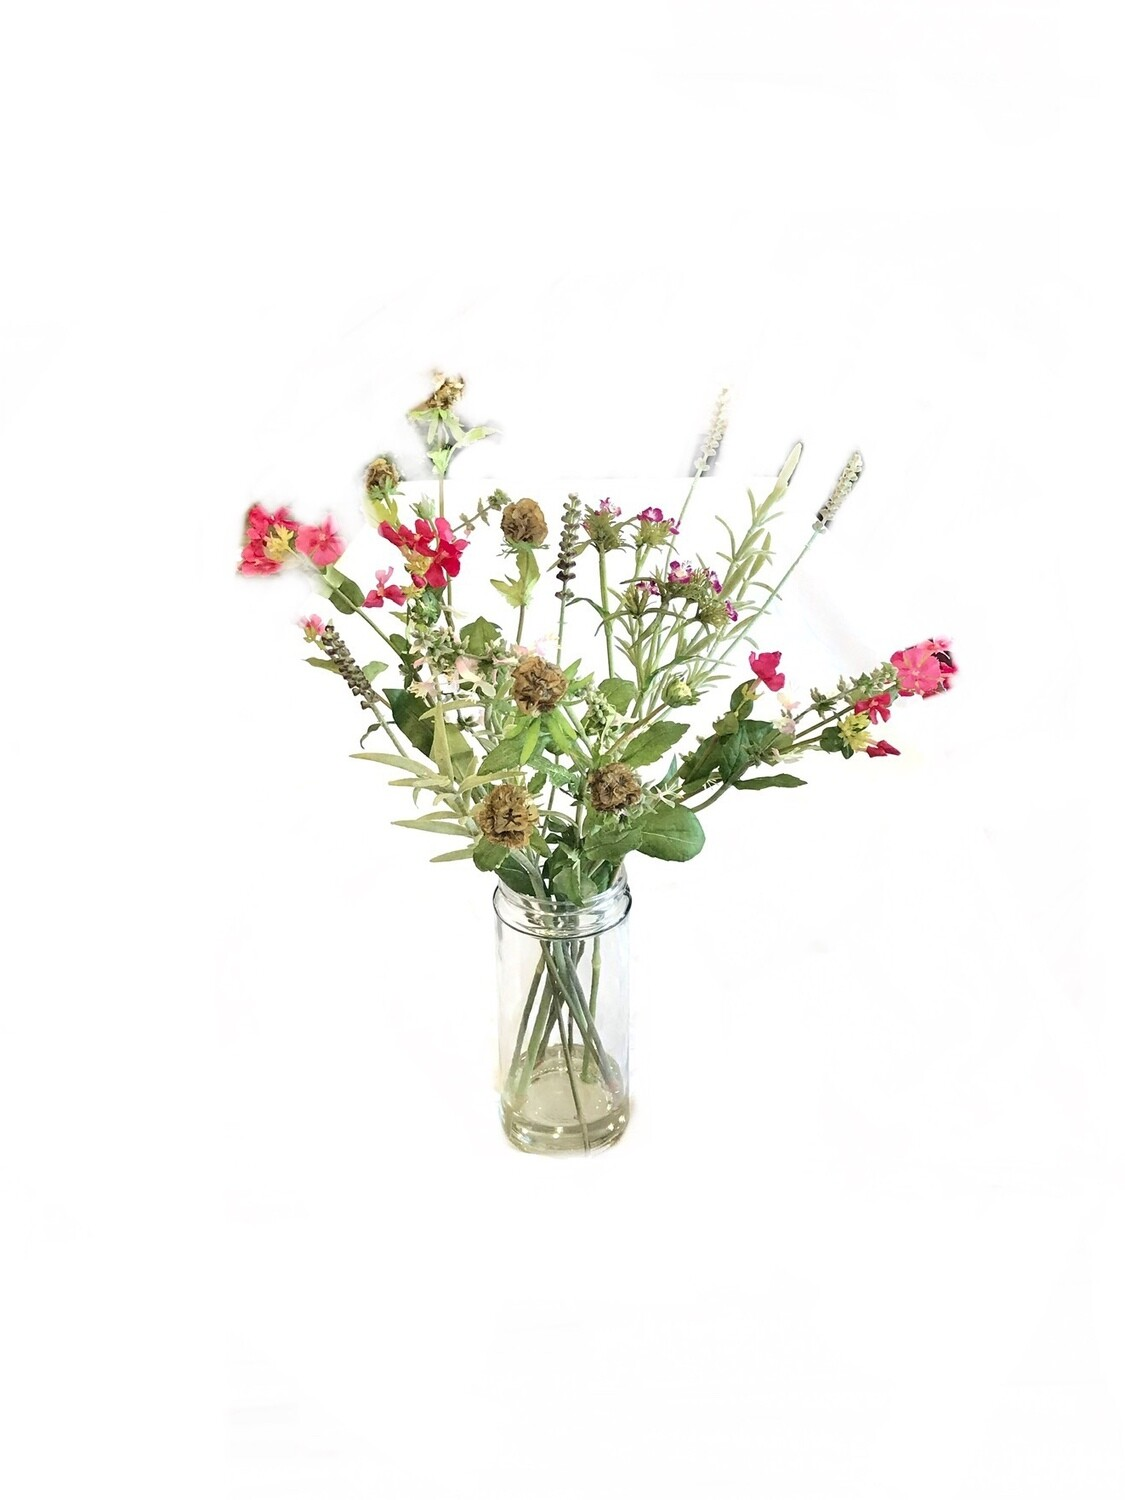 Gathered flowers in glass vase